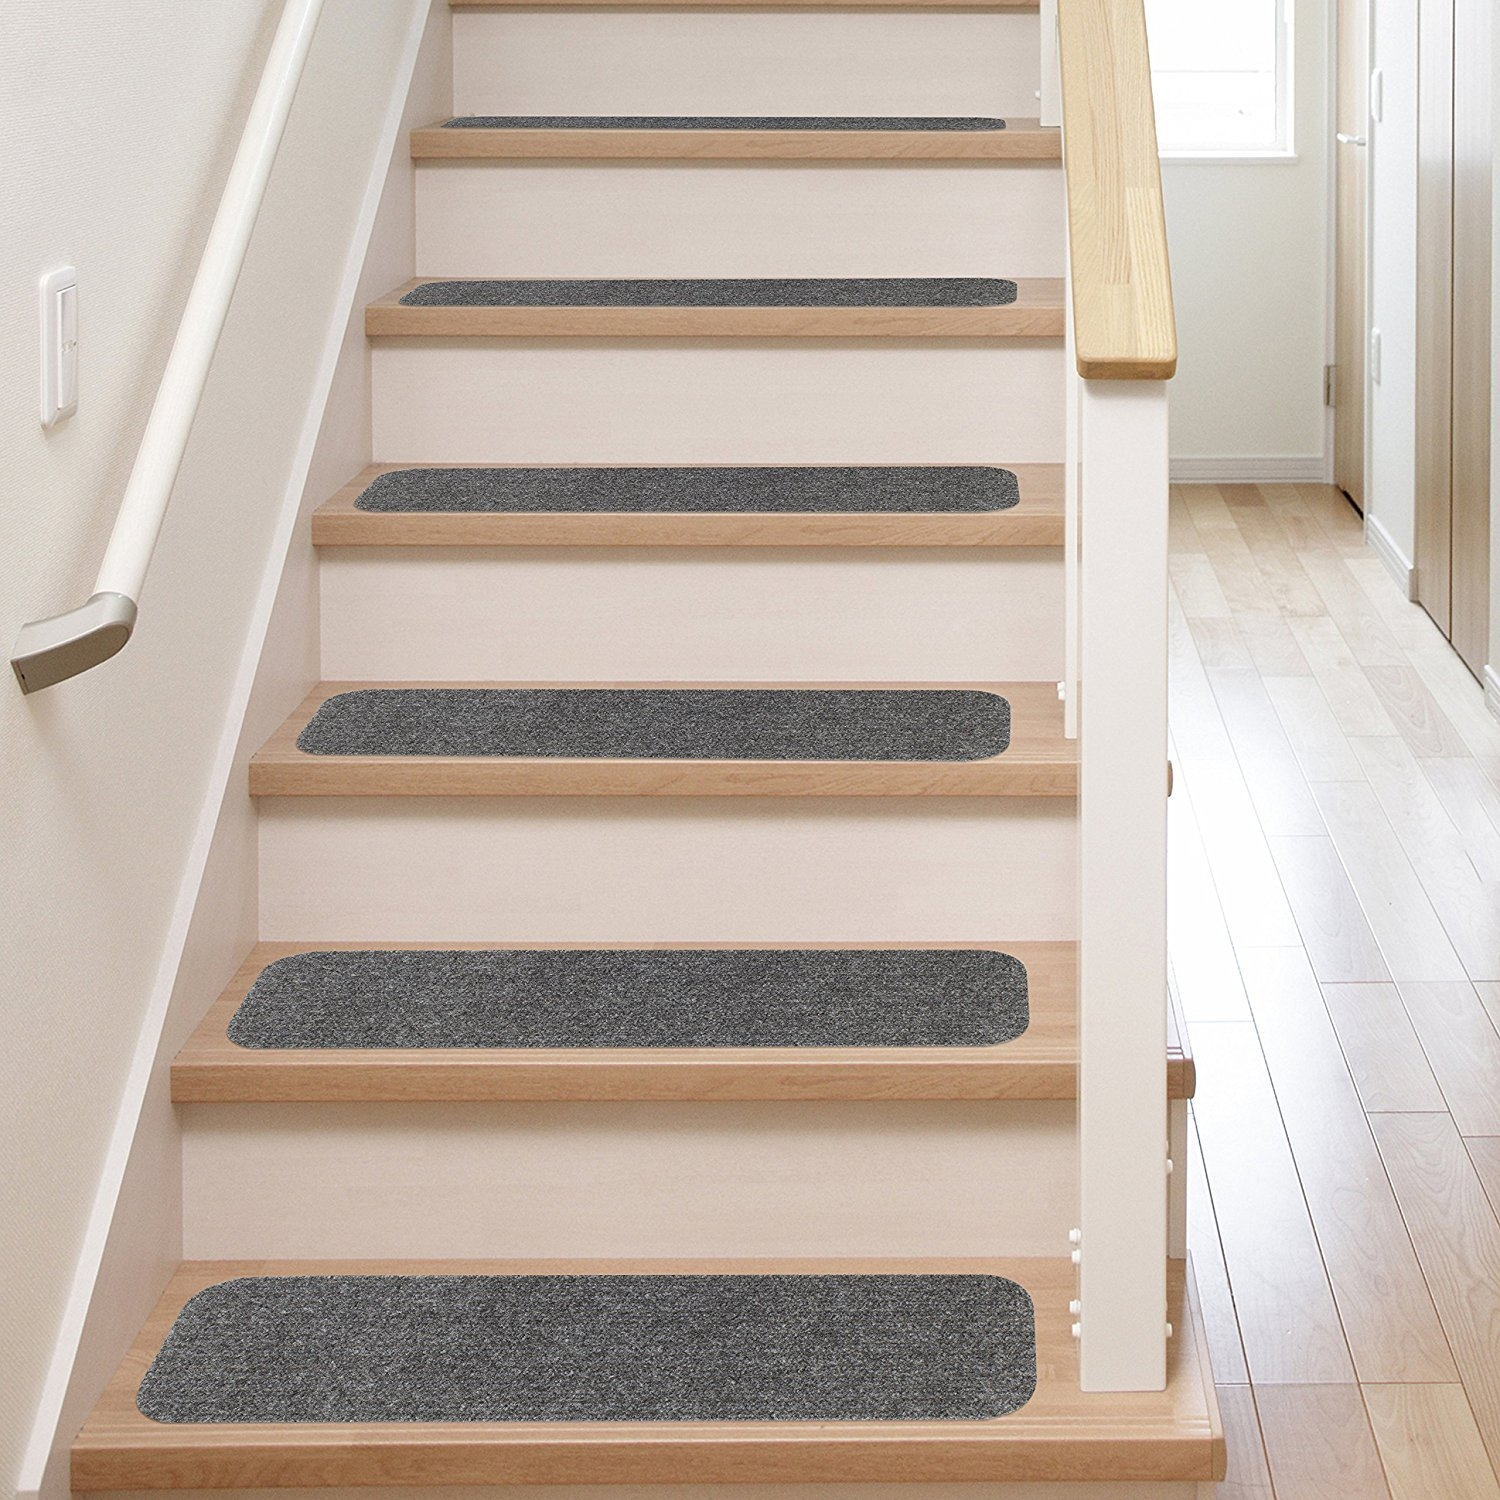 Wonderful 13 Stair Treads Non Slip Carpet Pads Easy Tape Installation Throughout  Carpet Stair Treads For Dogs